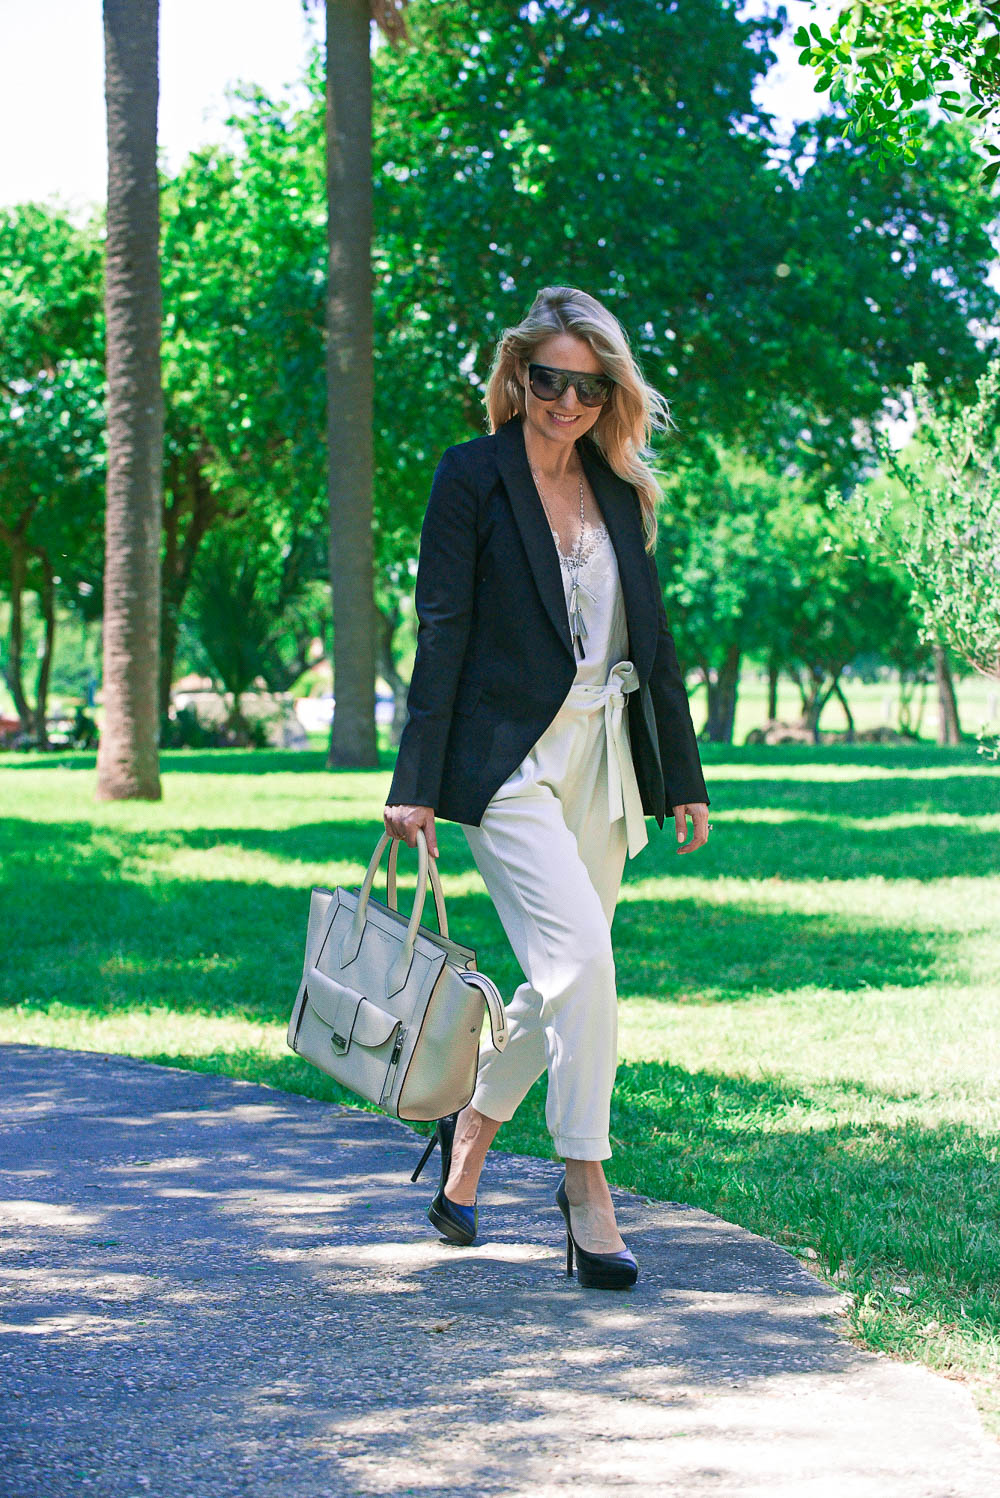 White bags are white hot for spring/summer! These trendy bags are neutral and versatile and will go with everything in your wardrobe. This post features white bags from Henri Bendel including the Rivington tote, a wallet and a mini crossbody white bag picked by fashion blogger and youtuber Erin Busbee of Busbee Style